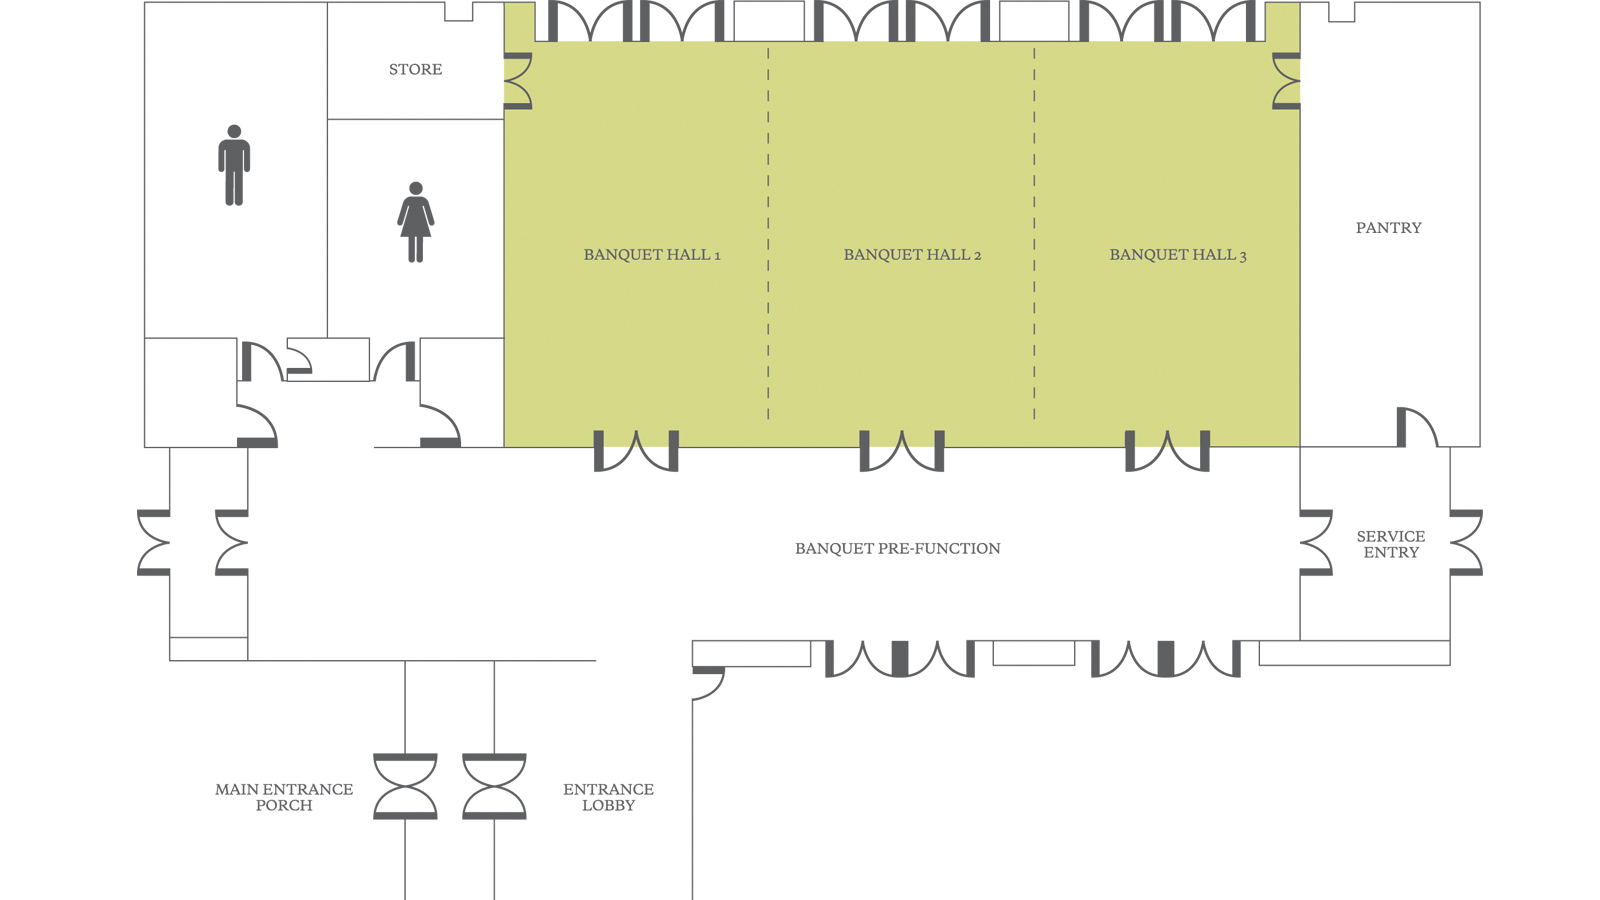 Meetings at the westin sohna resort and spa for Banquet floor plan template